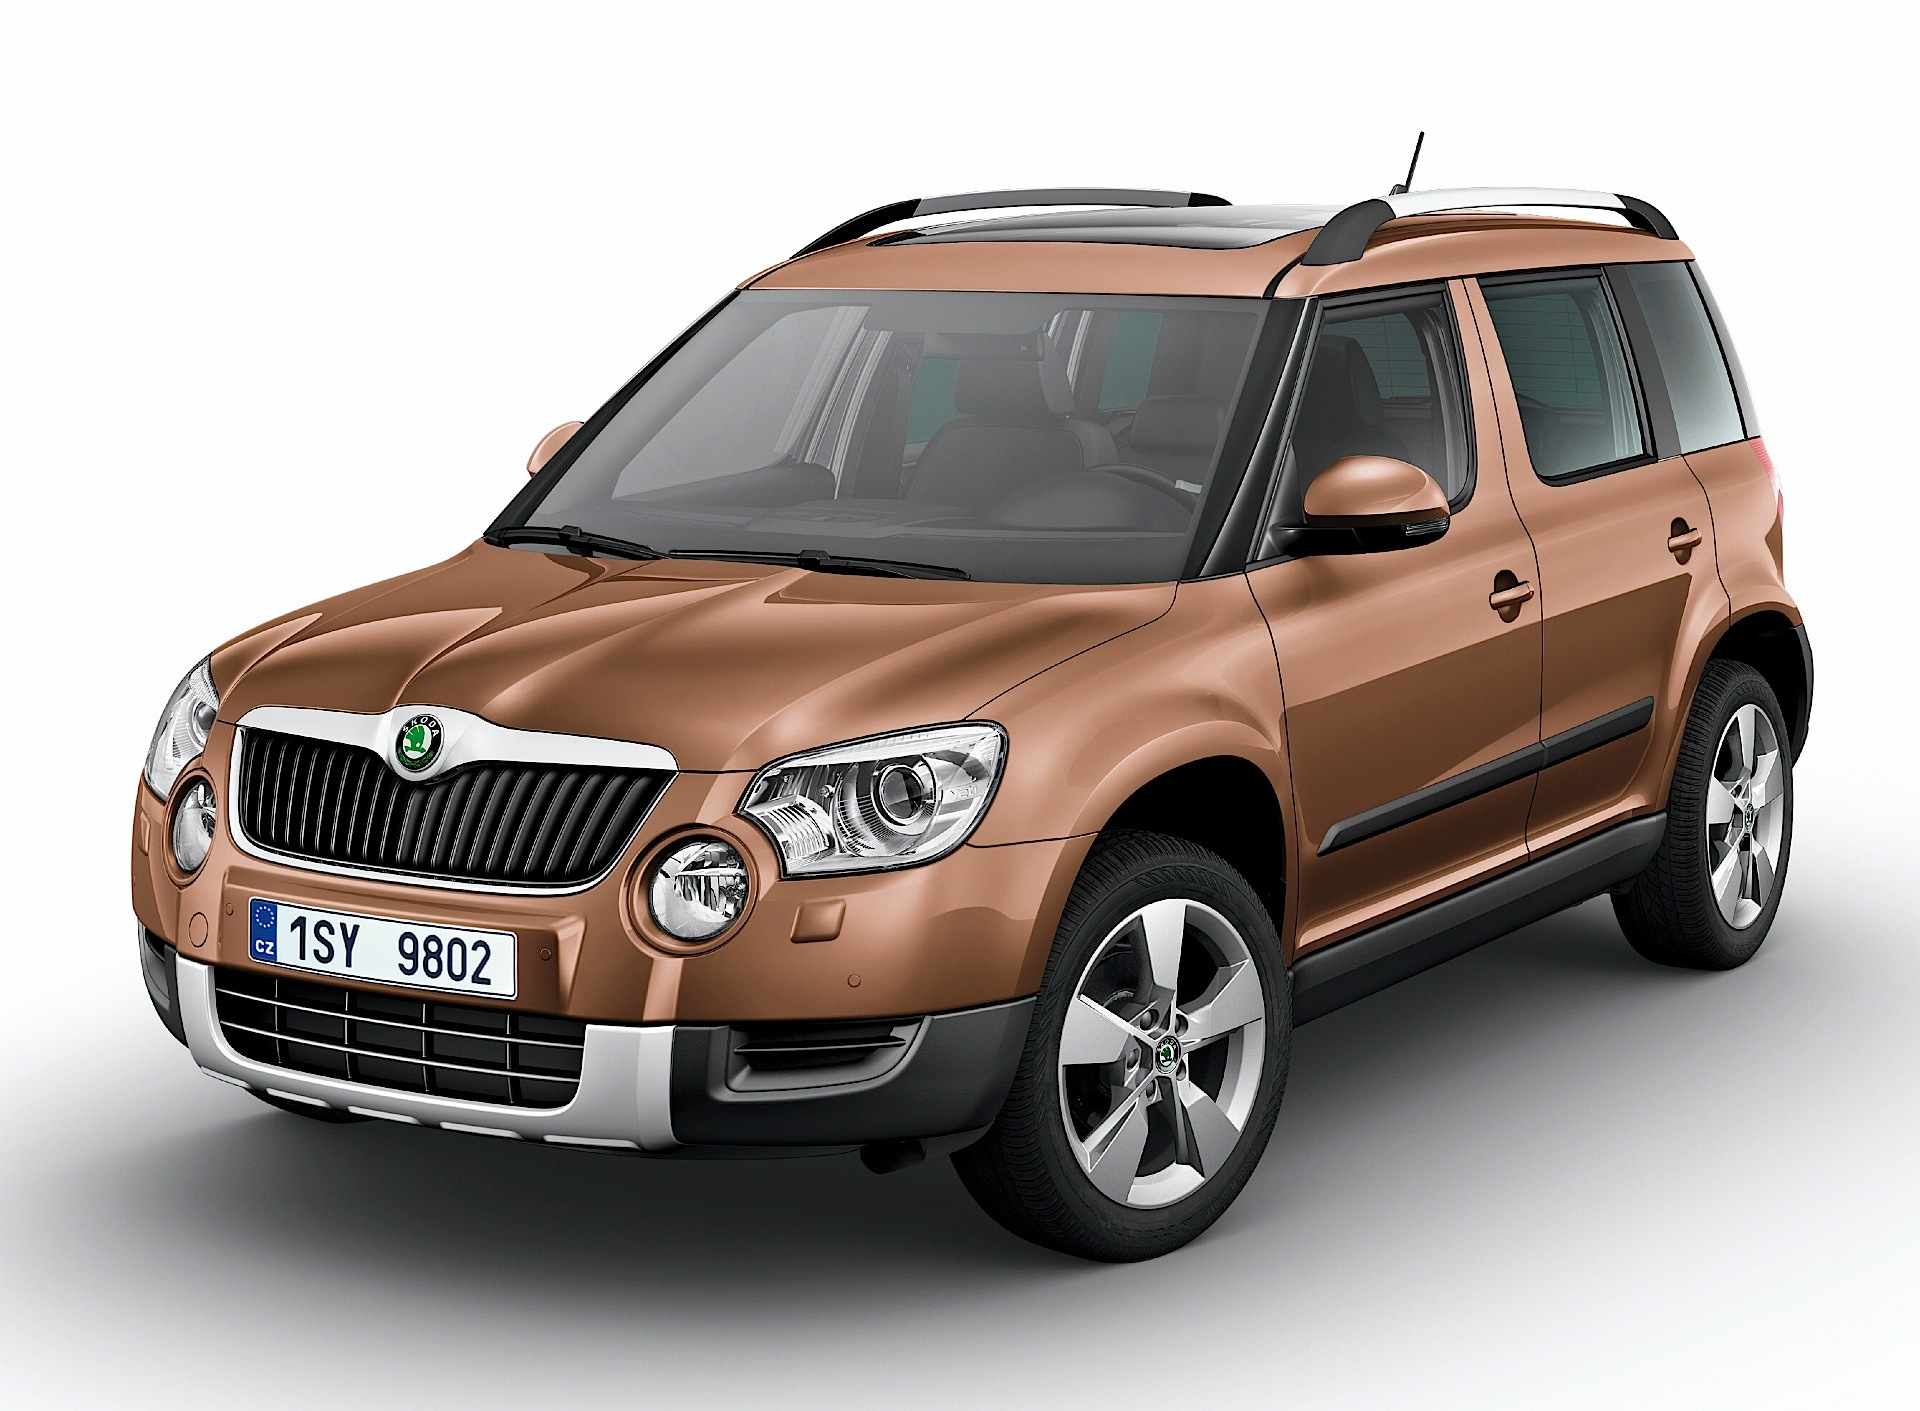 skoda yeti specs amp photos 2009 2010 2011 2012 2013